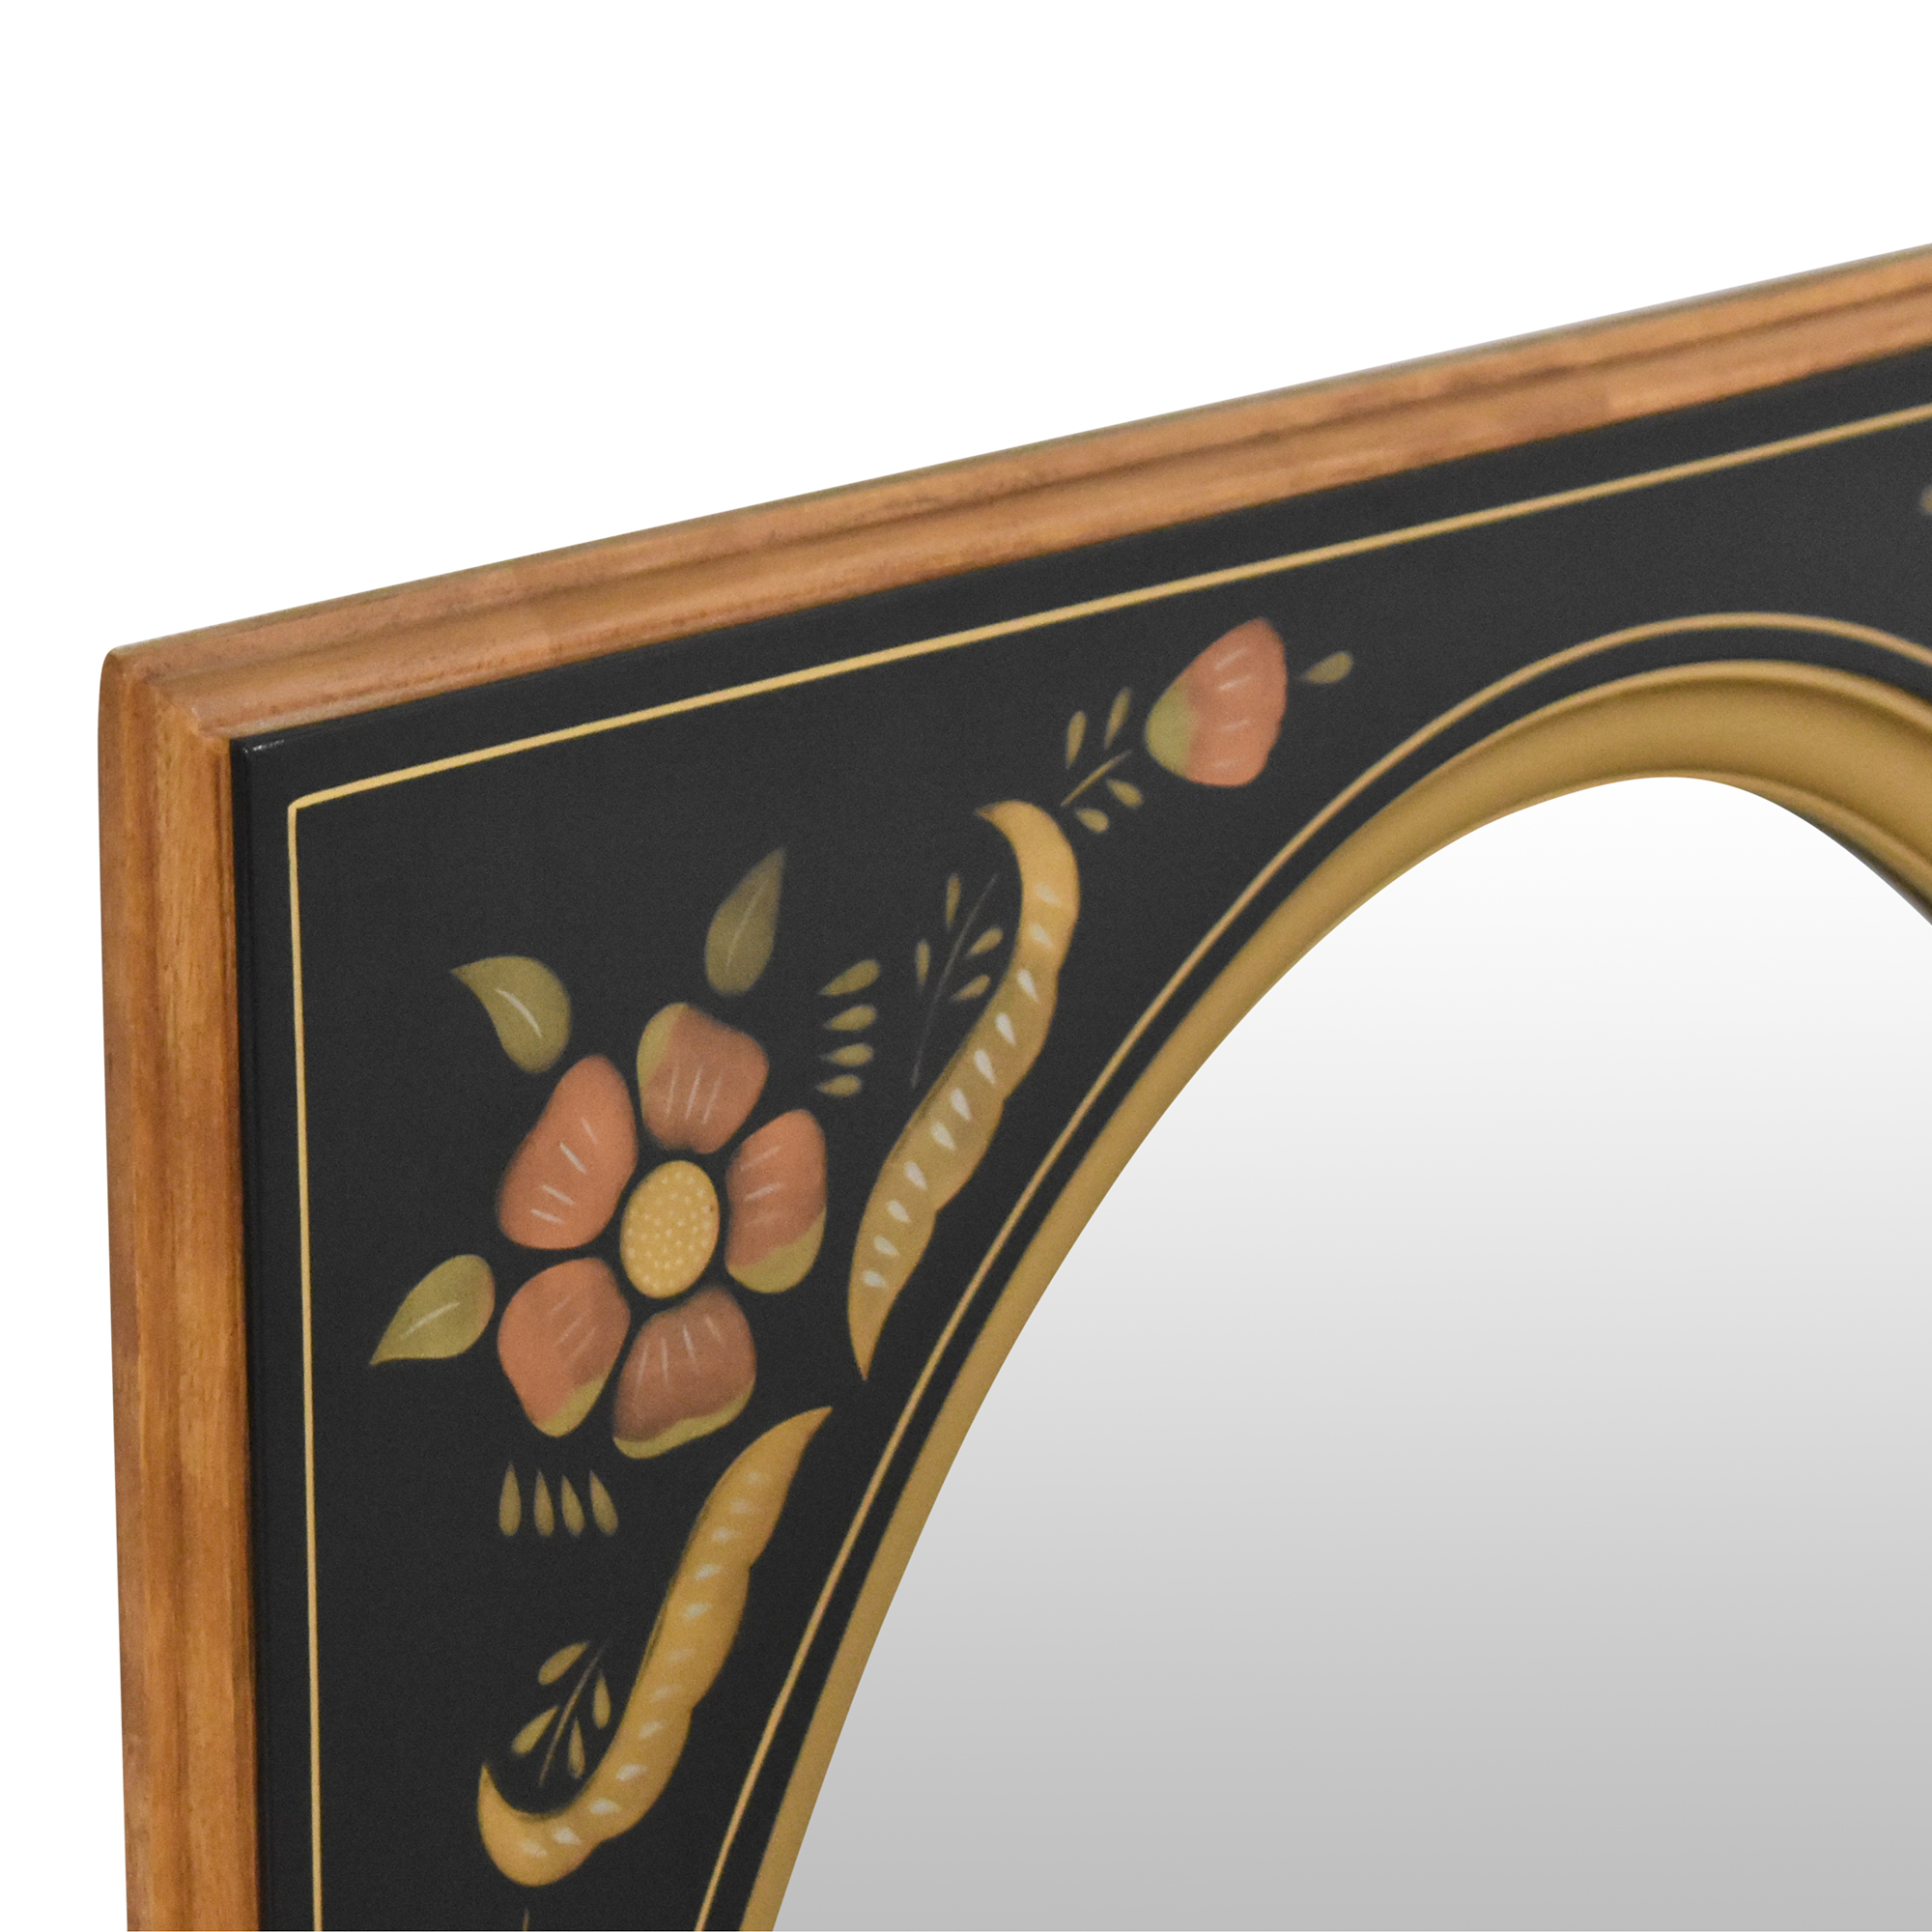 Ethan Allen Ethan Allen Floral Wall Mirror used